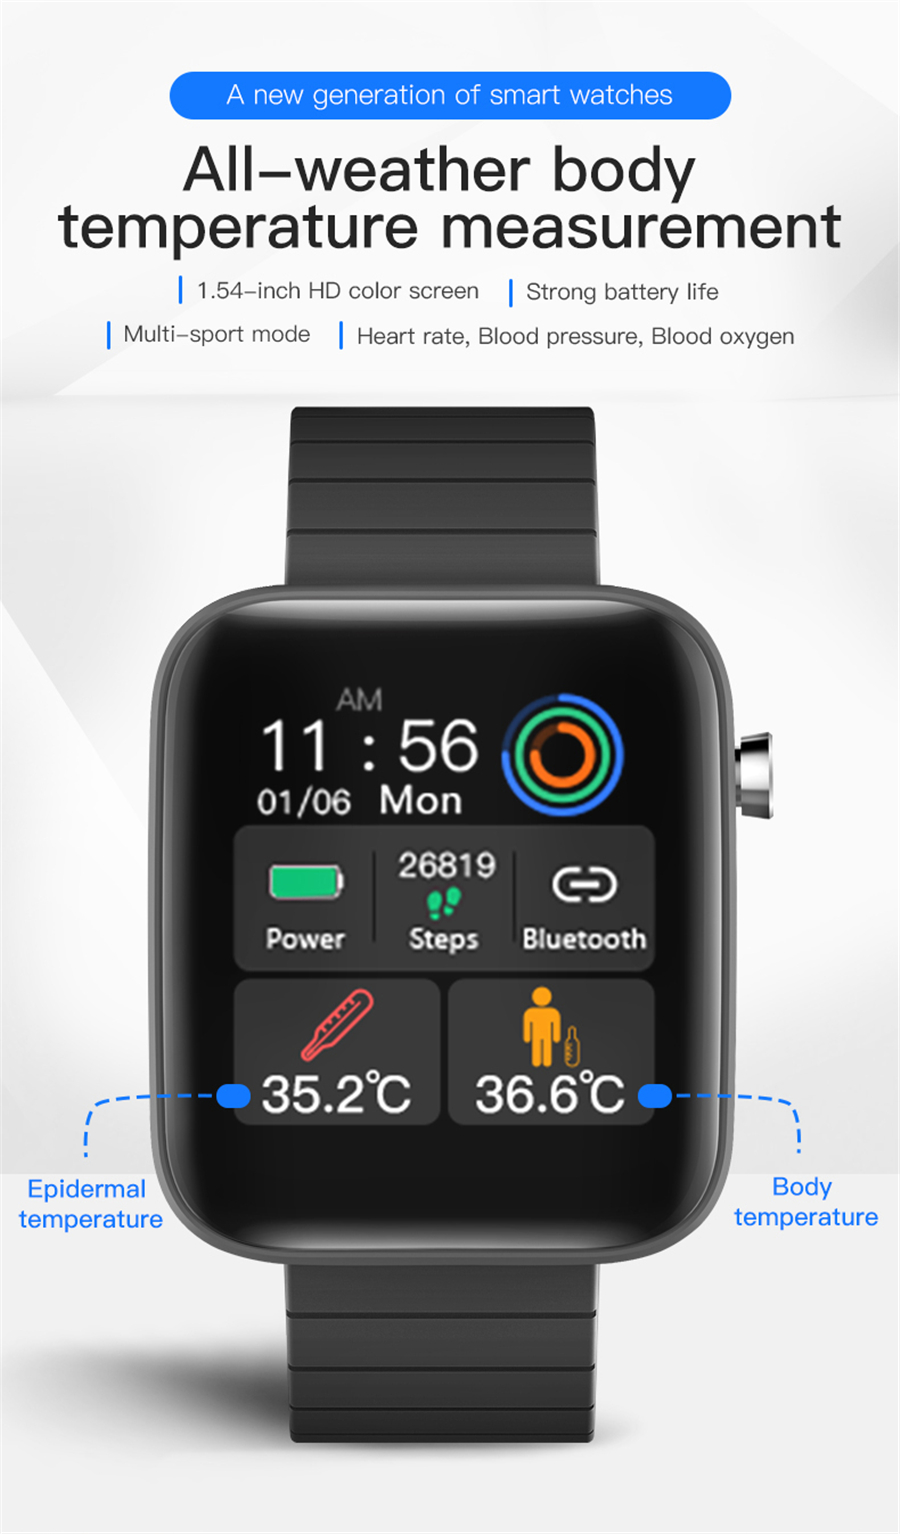 H2d0843f63dad4282bcaba8b904ad08e3y T68 Men Women Smart Watch with Body Temperature Measure Sports Fitness Watch Heart Rate Blood Pressure Oxygen Monitor Smartwatch